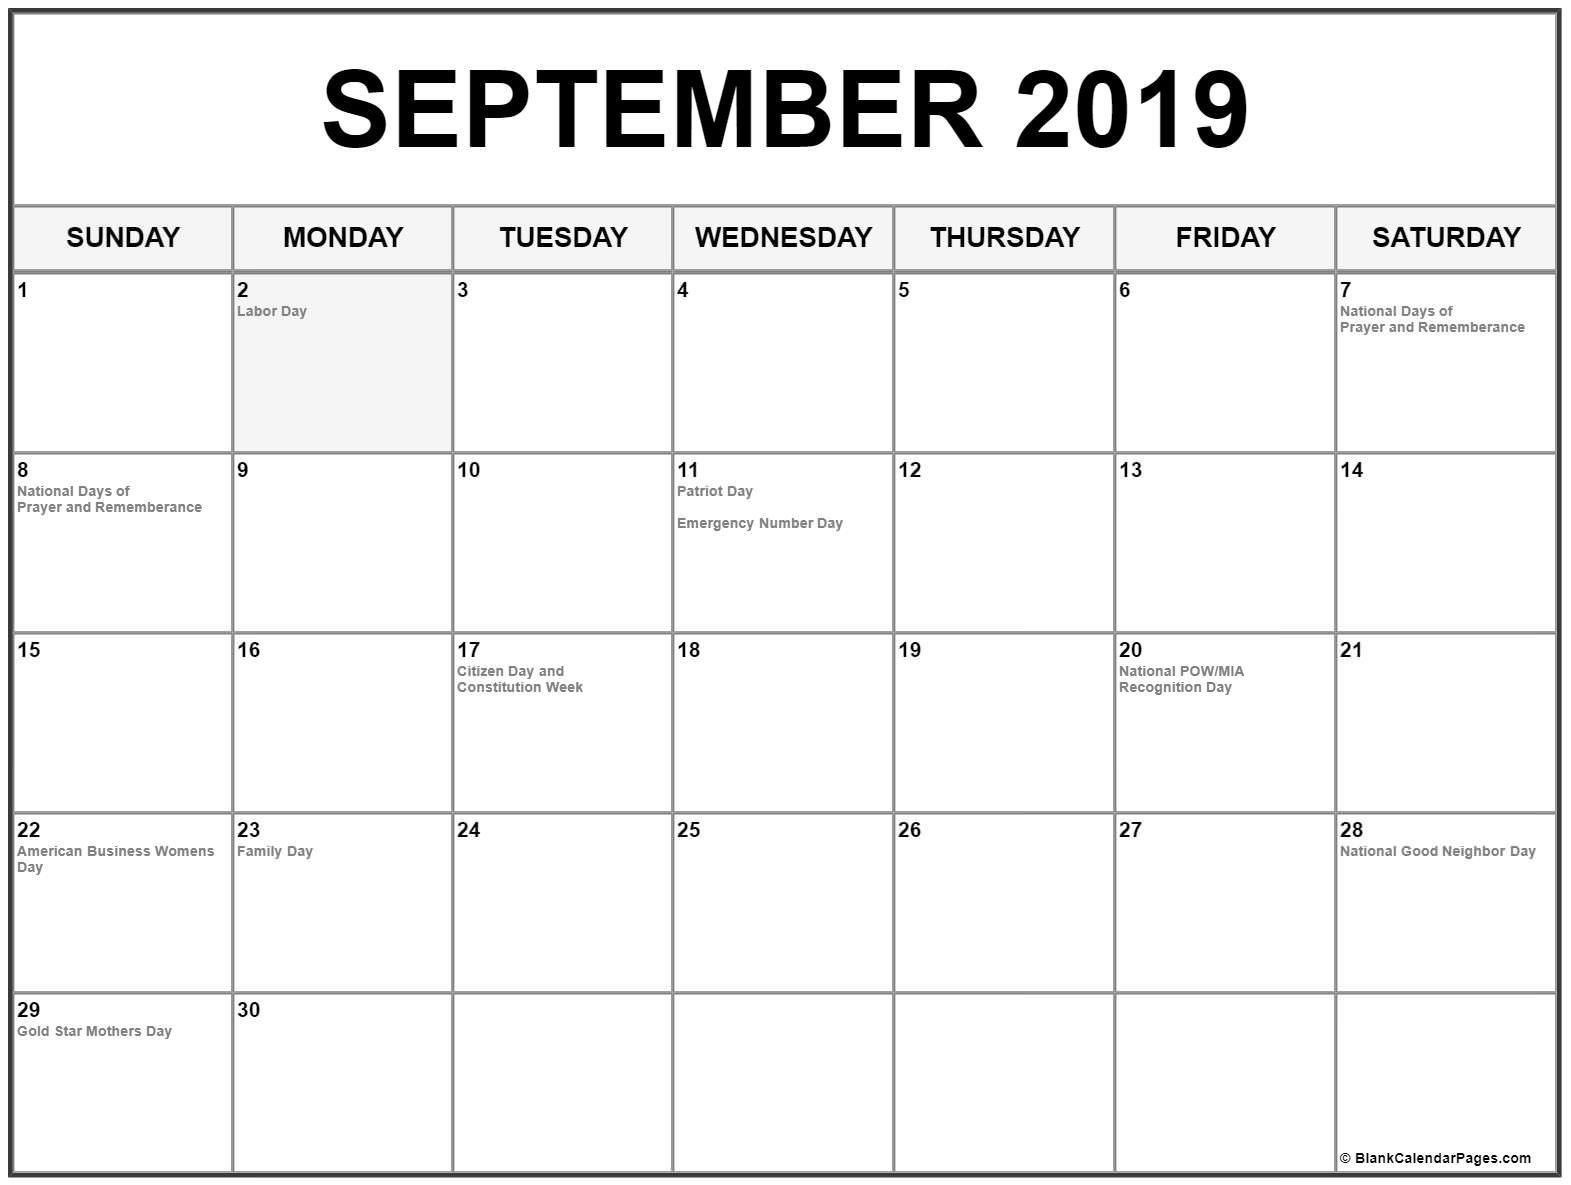 September 2019 Calendar With Holidays #september #september2019 Calendar 2019 Sept